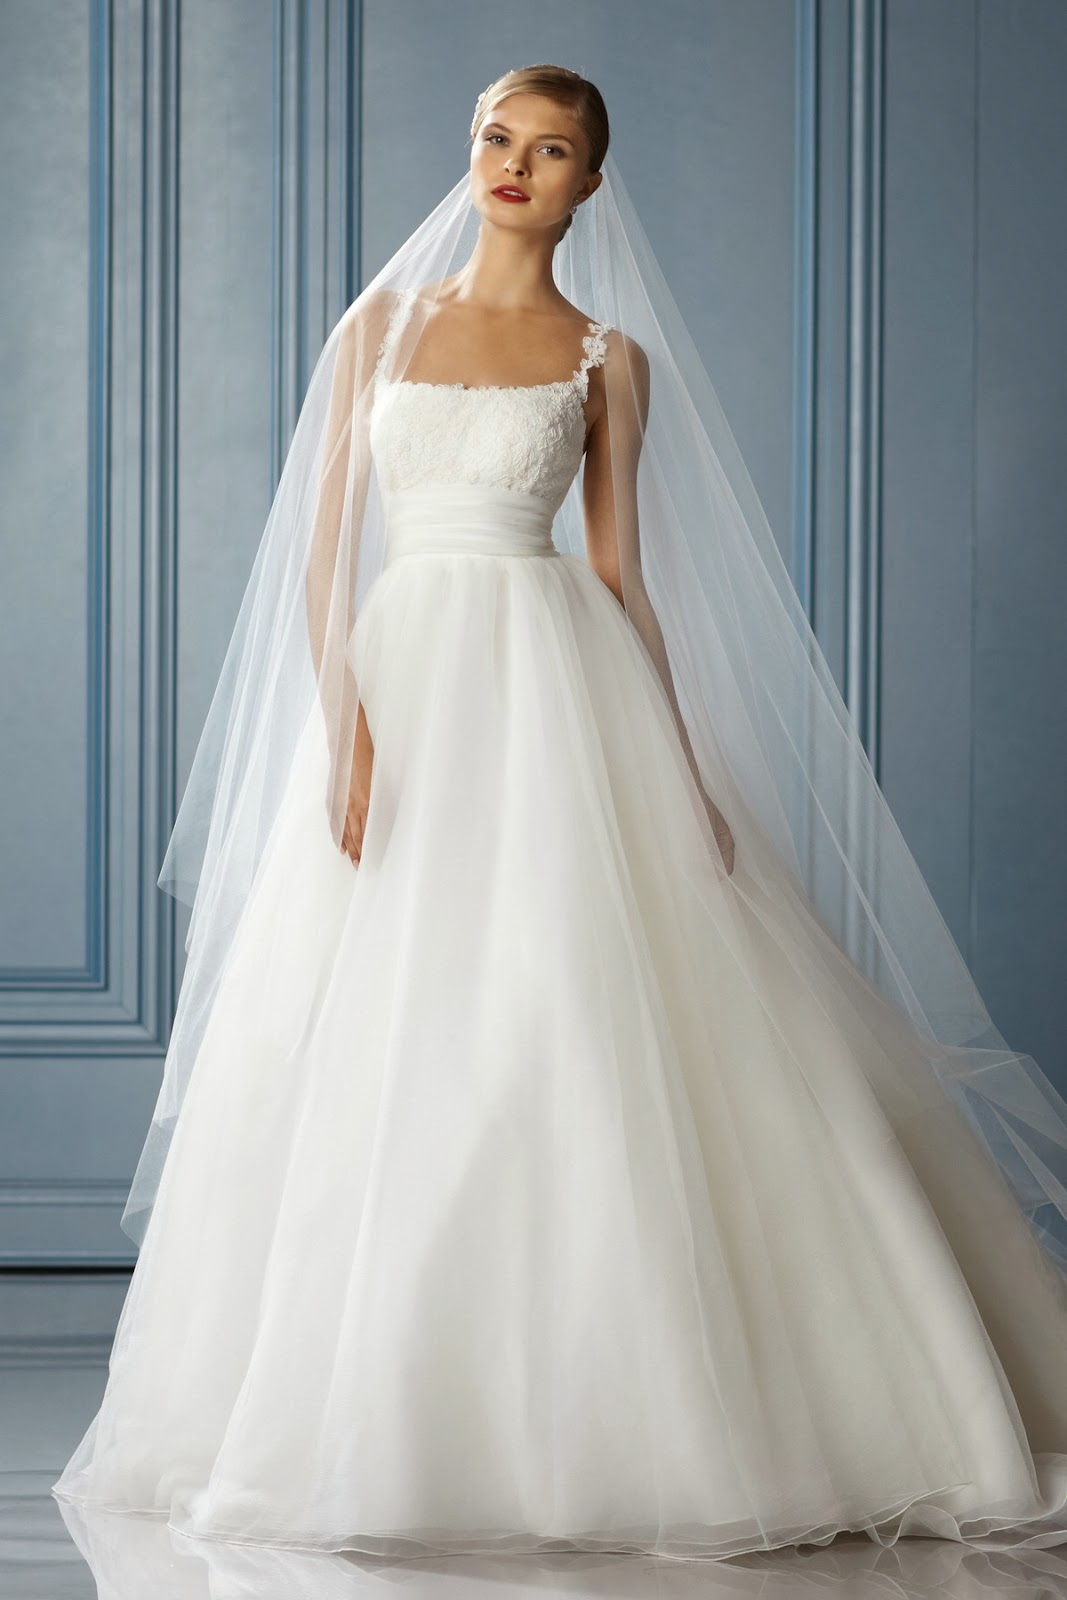 expensive wedding dresses wedding plan ideas With expensive wedding dresses